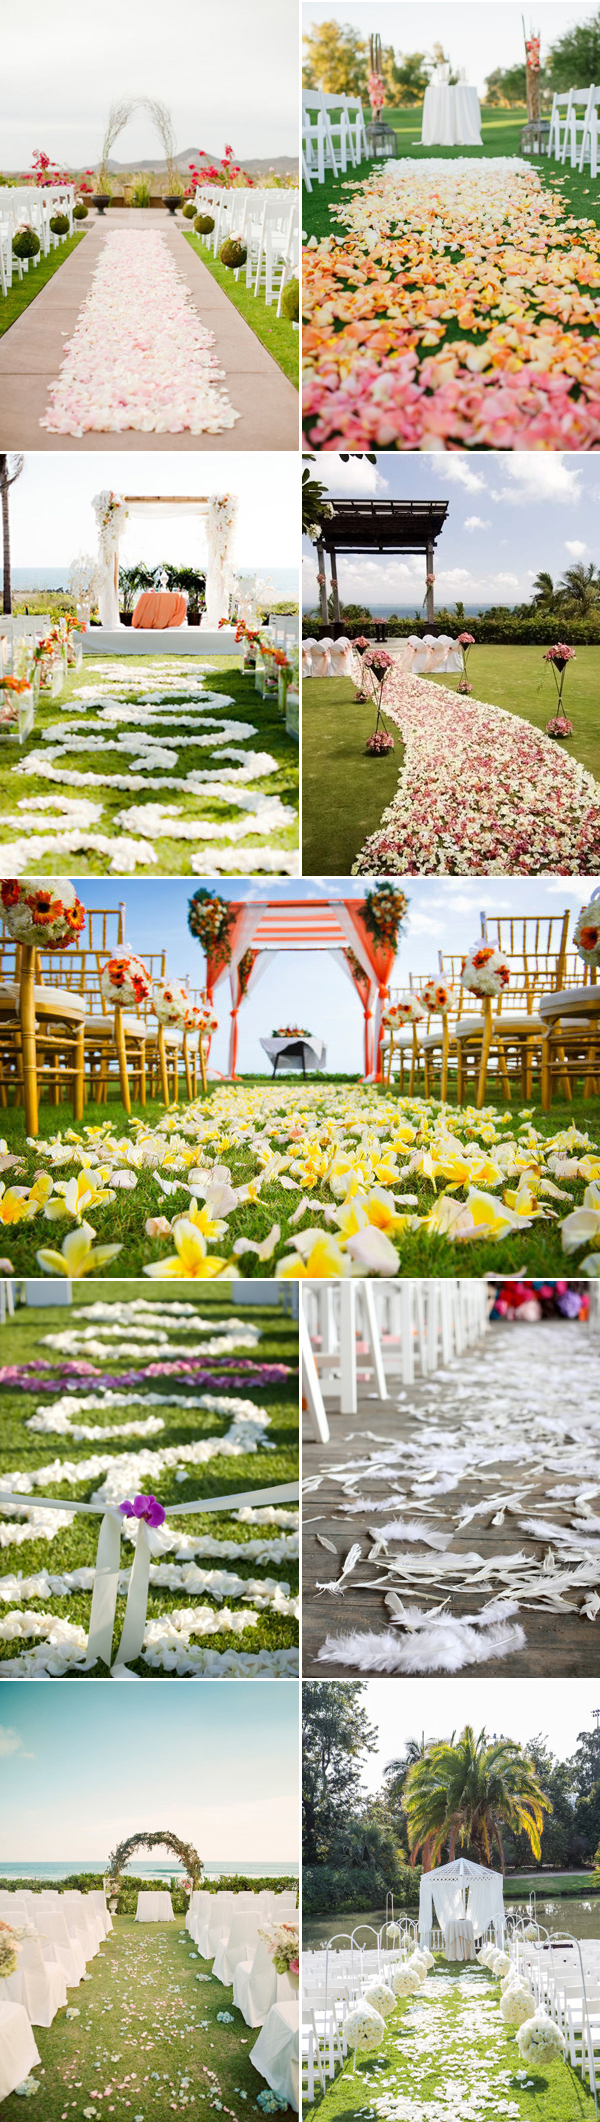 Outdoor Wedding Aisle Runner On Grass : outdoor, wedding, aisle, runner, grass, Wedding, Aisle, Runner, Ideas, Pearl, Flowers